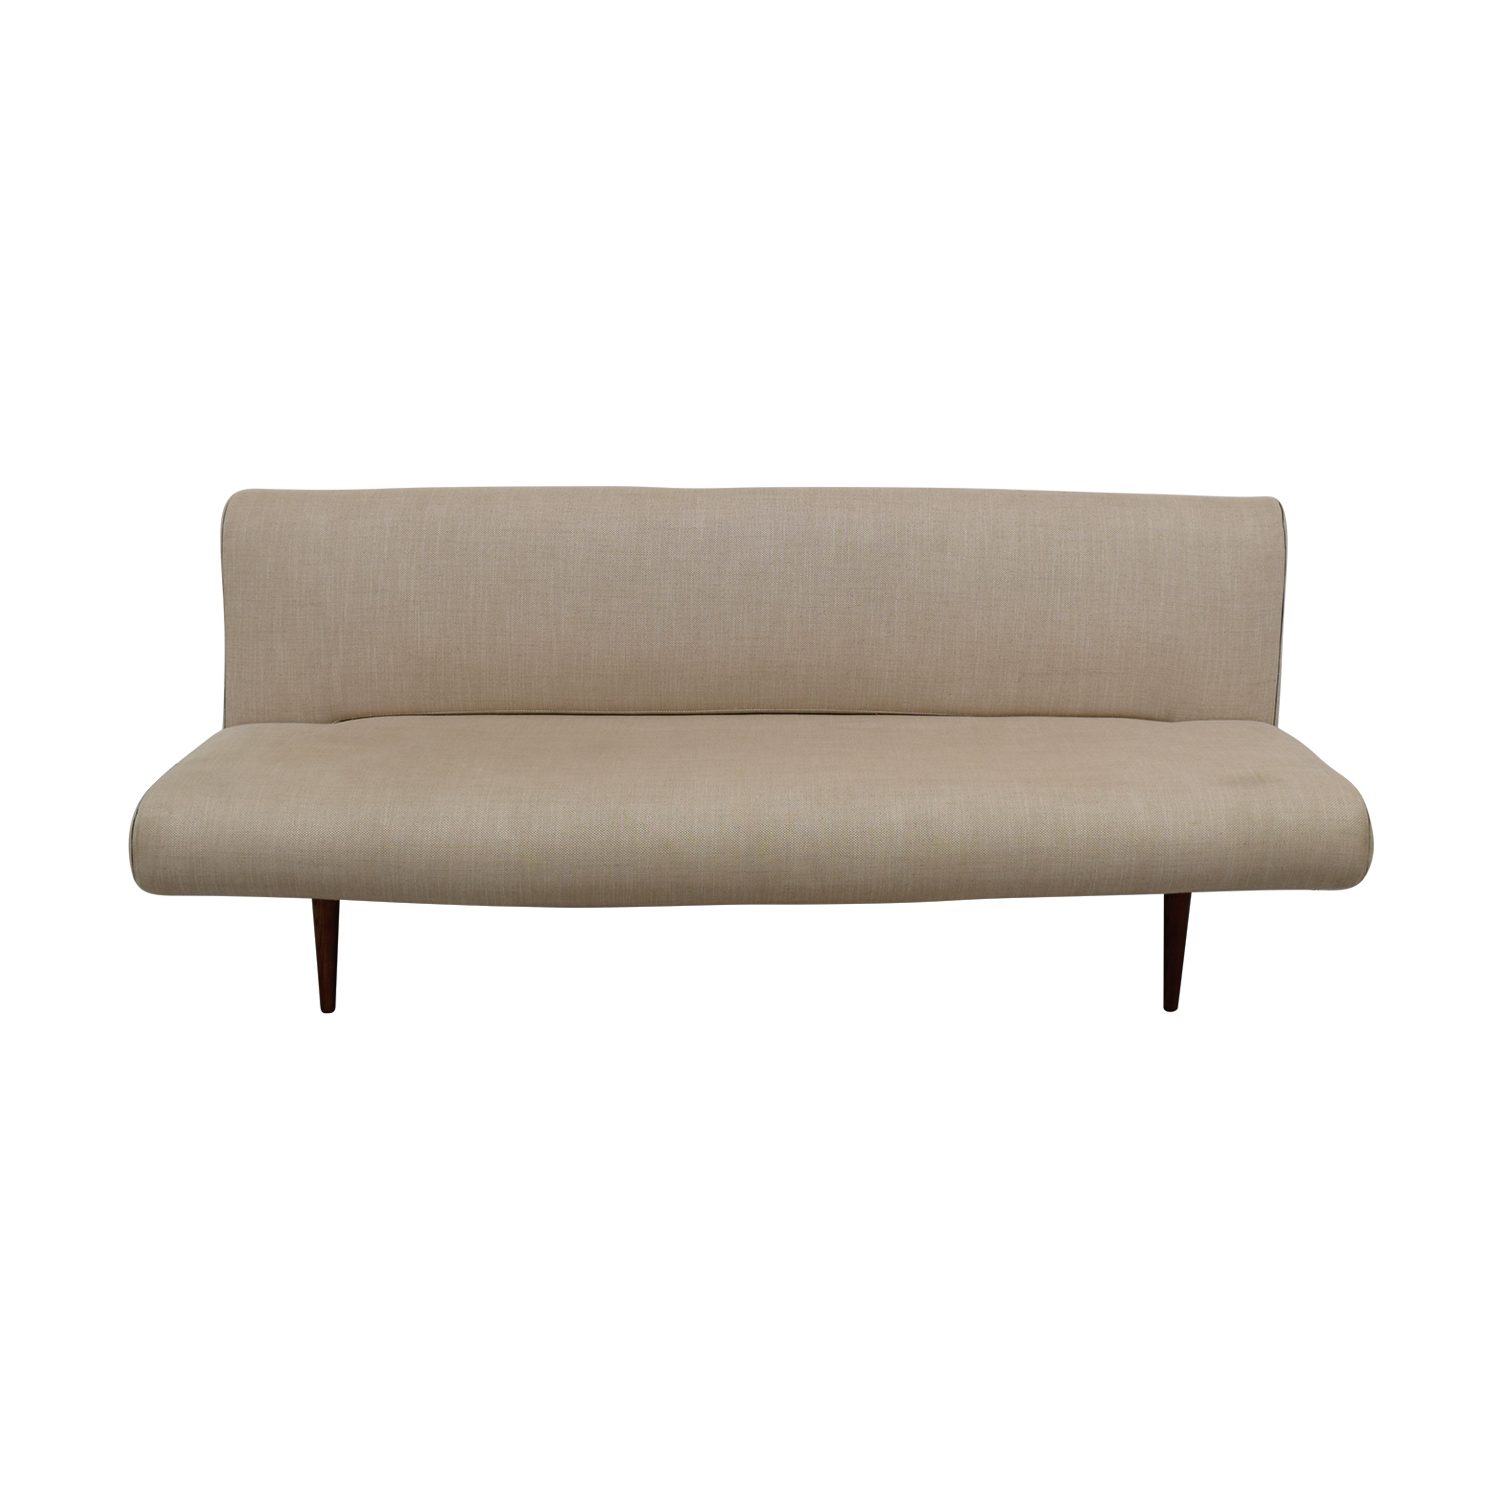 46% OFF - Mid-Century Beige Tweed Unfurl Sleeper Sofa / Sofas